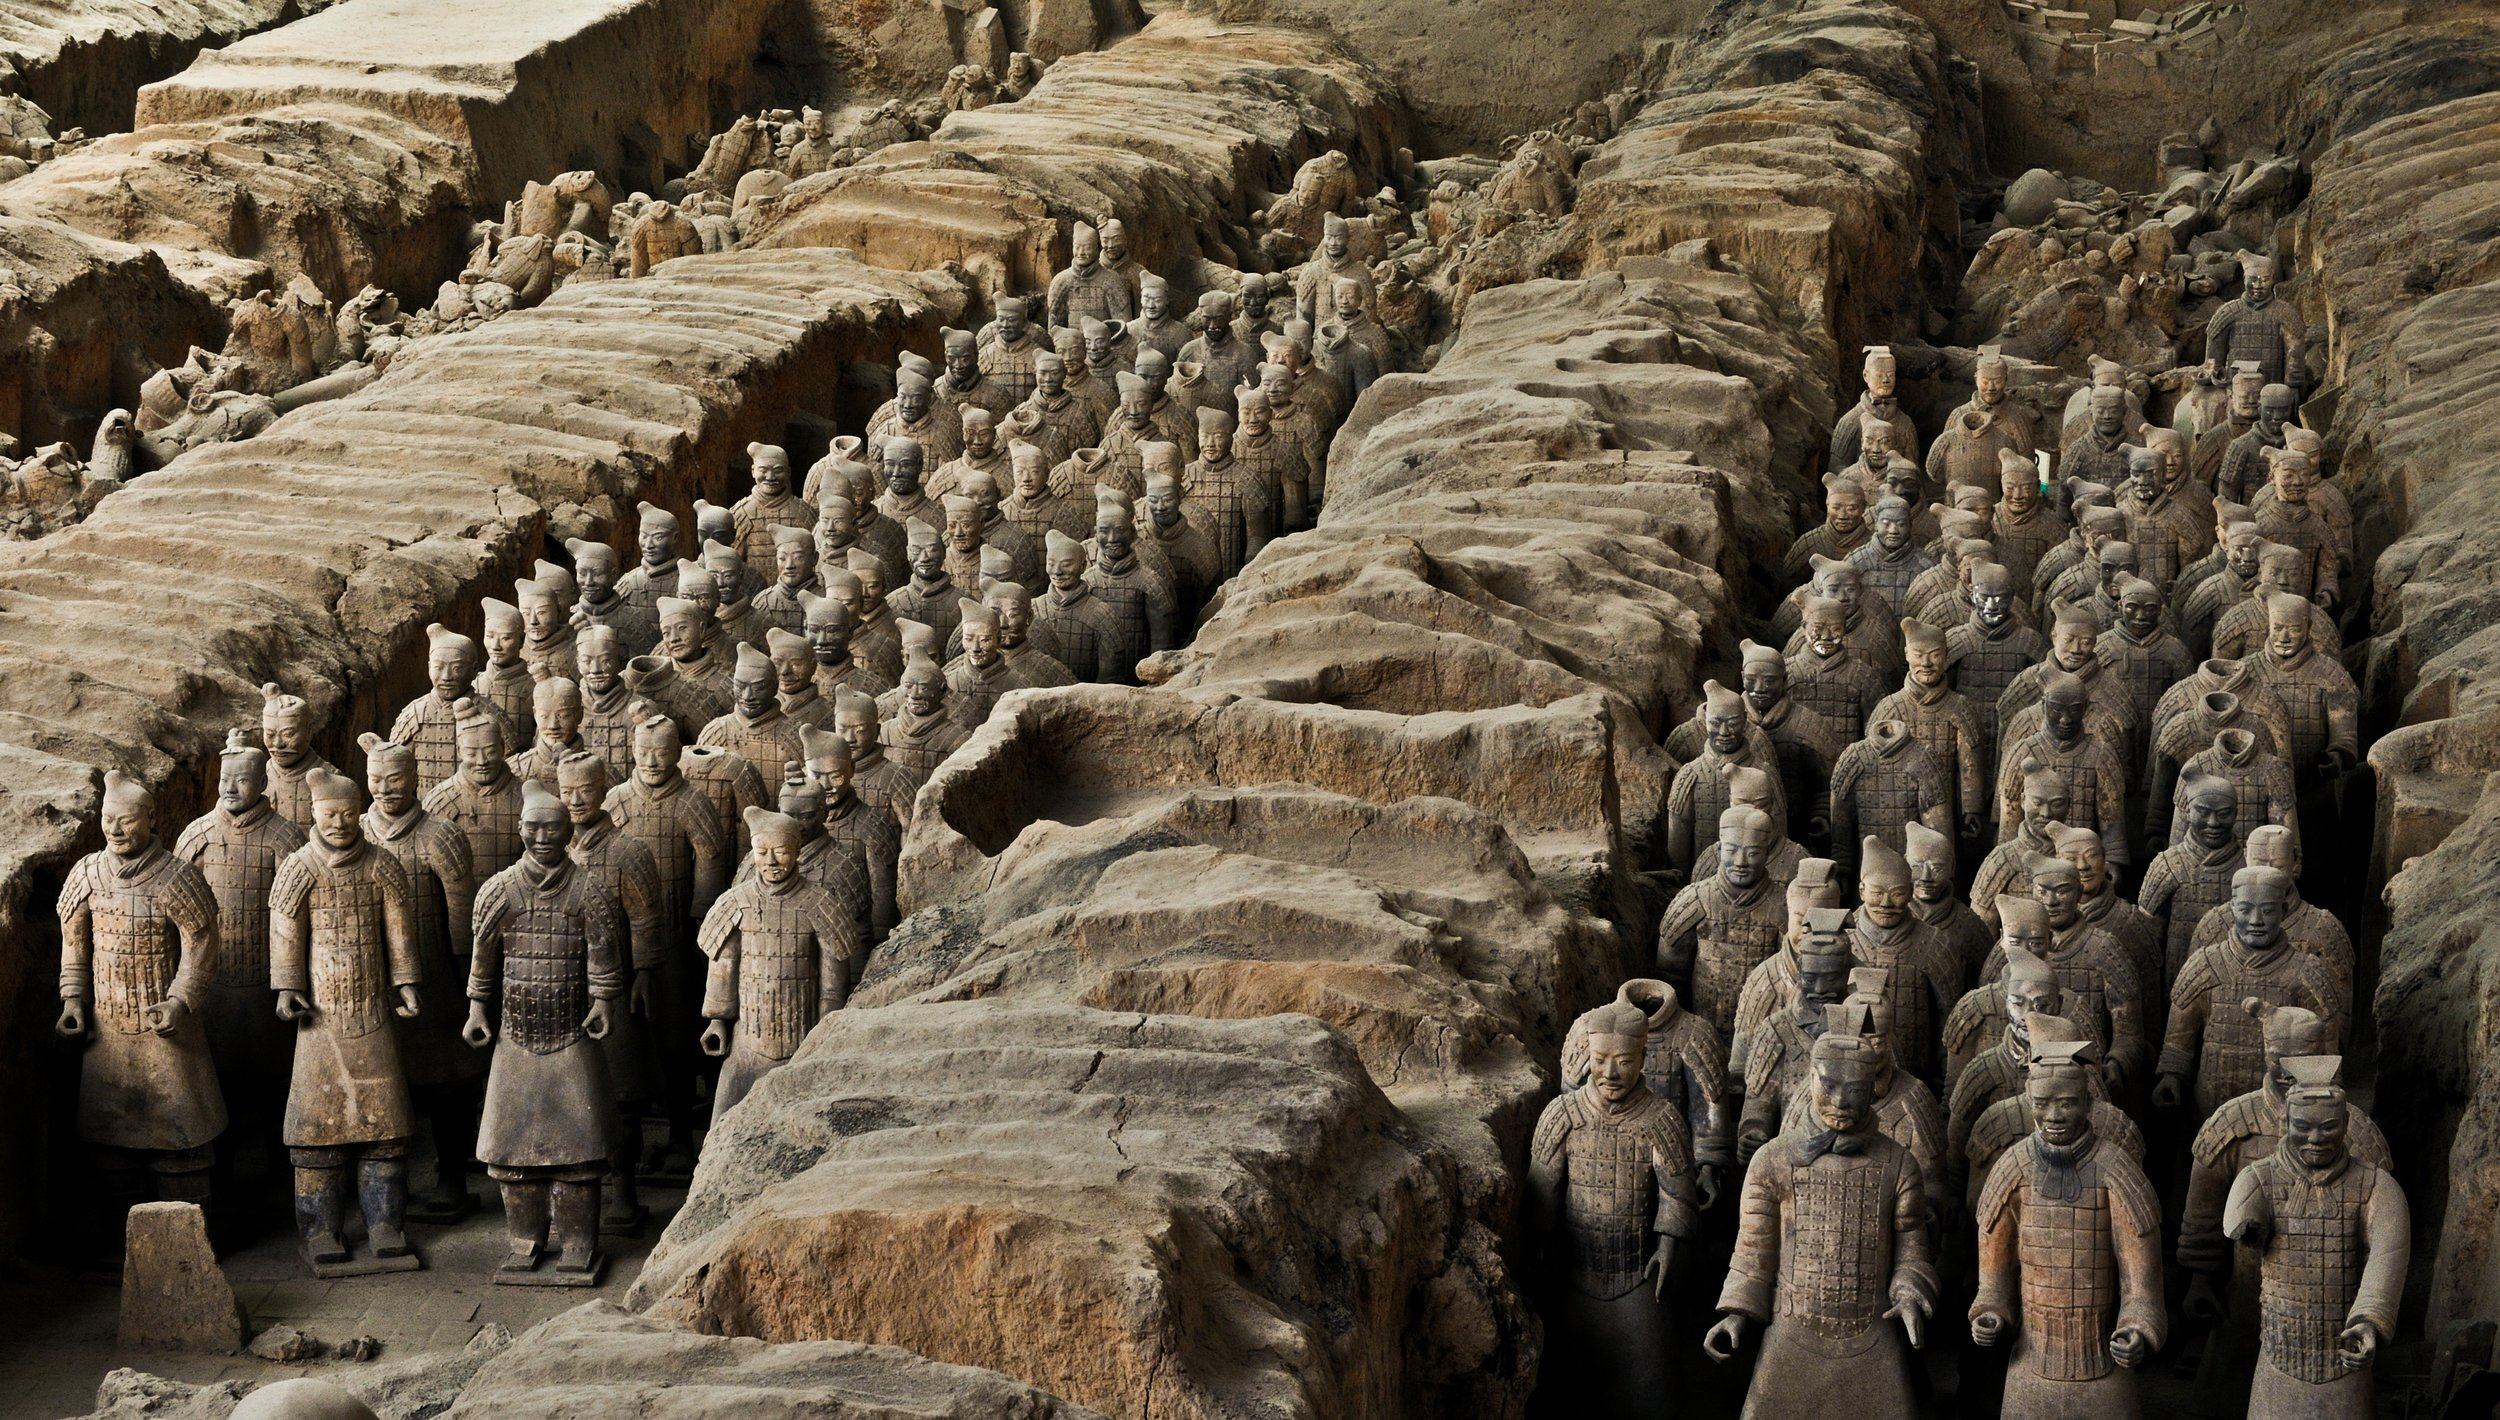 HISTORY - The clay we use is recovered from the same original source used to create the iconic Chinese Terracotta Army. This is a testament to the quality and durability of our natural product.CN Terracotta offers a unique combination of over two thousand years of tradition - balanced with modern, environmentally friendly, efficient and economic production methods. This combination of benefits, coupled with experienced architects and world class engineering and project management professionals will ensure your development delivers on its full potential.